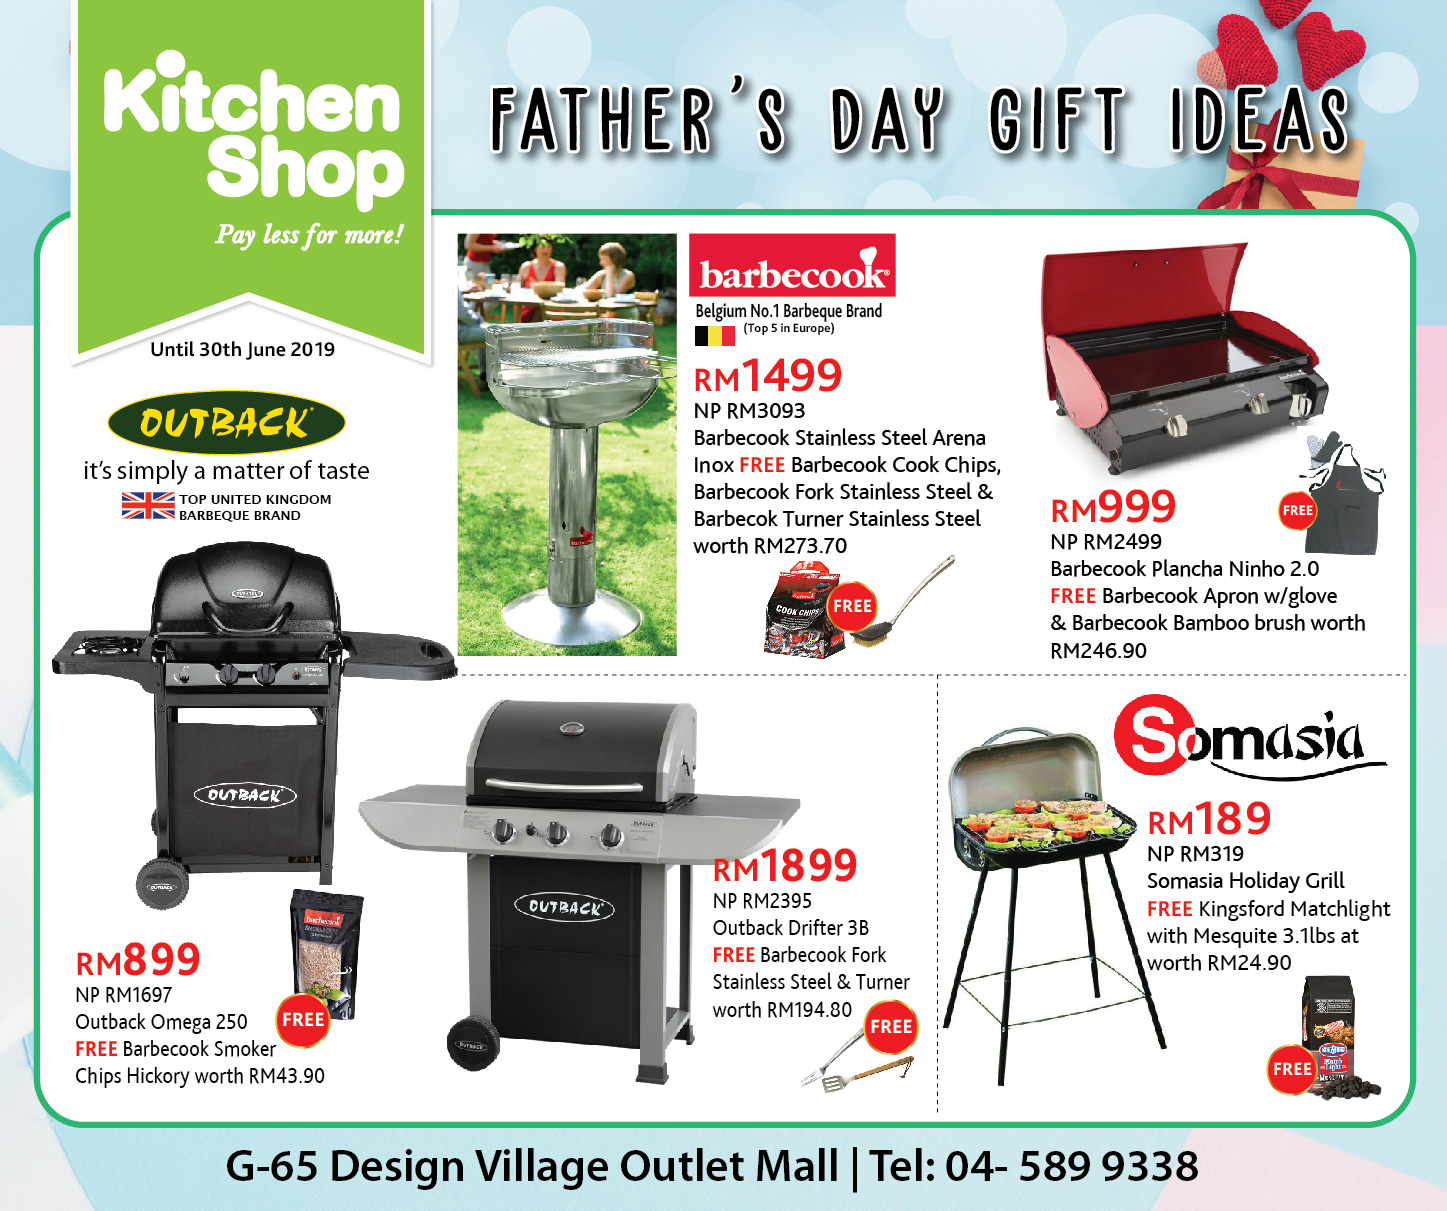 34cc186d4bf Kitchen Shop Father's Day Gift Ideas